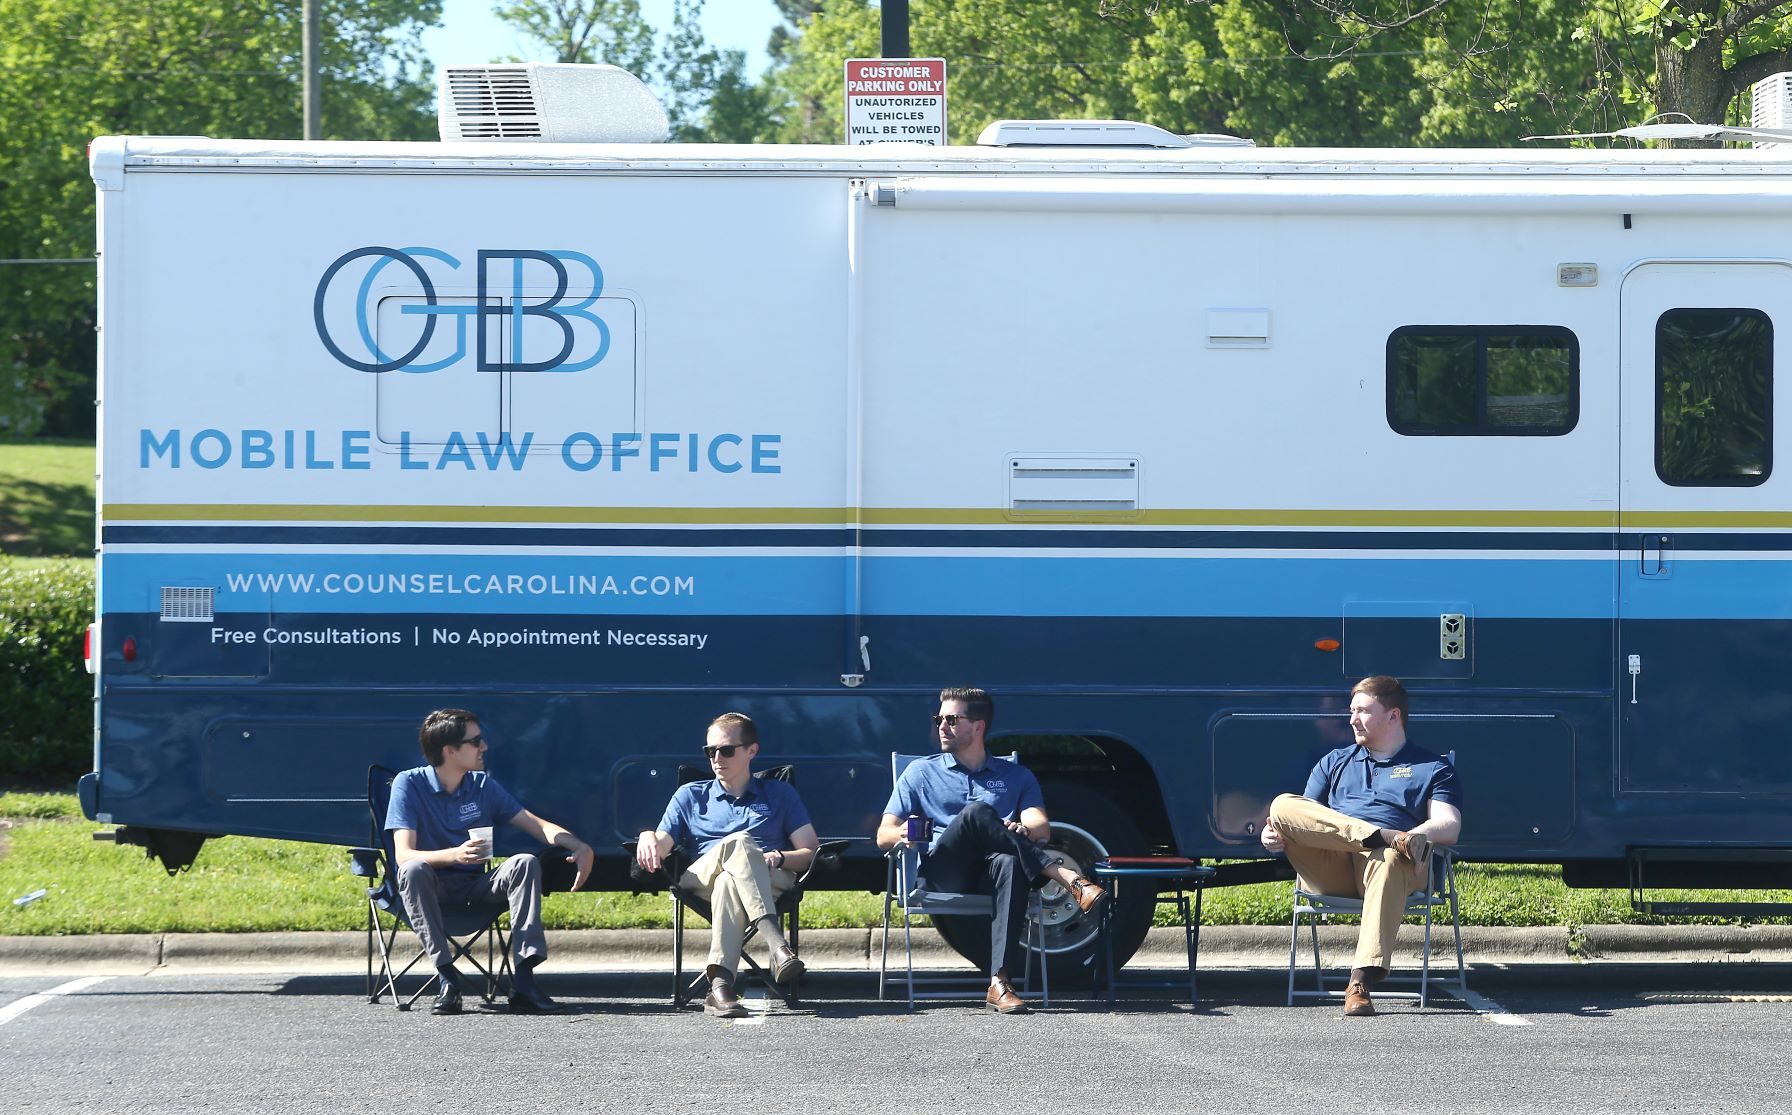 Indy Week Pic Outside RV best (Bob Karp) - Small Size